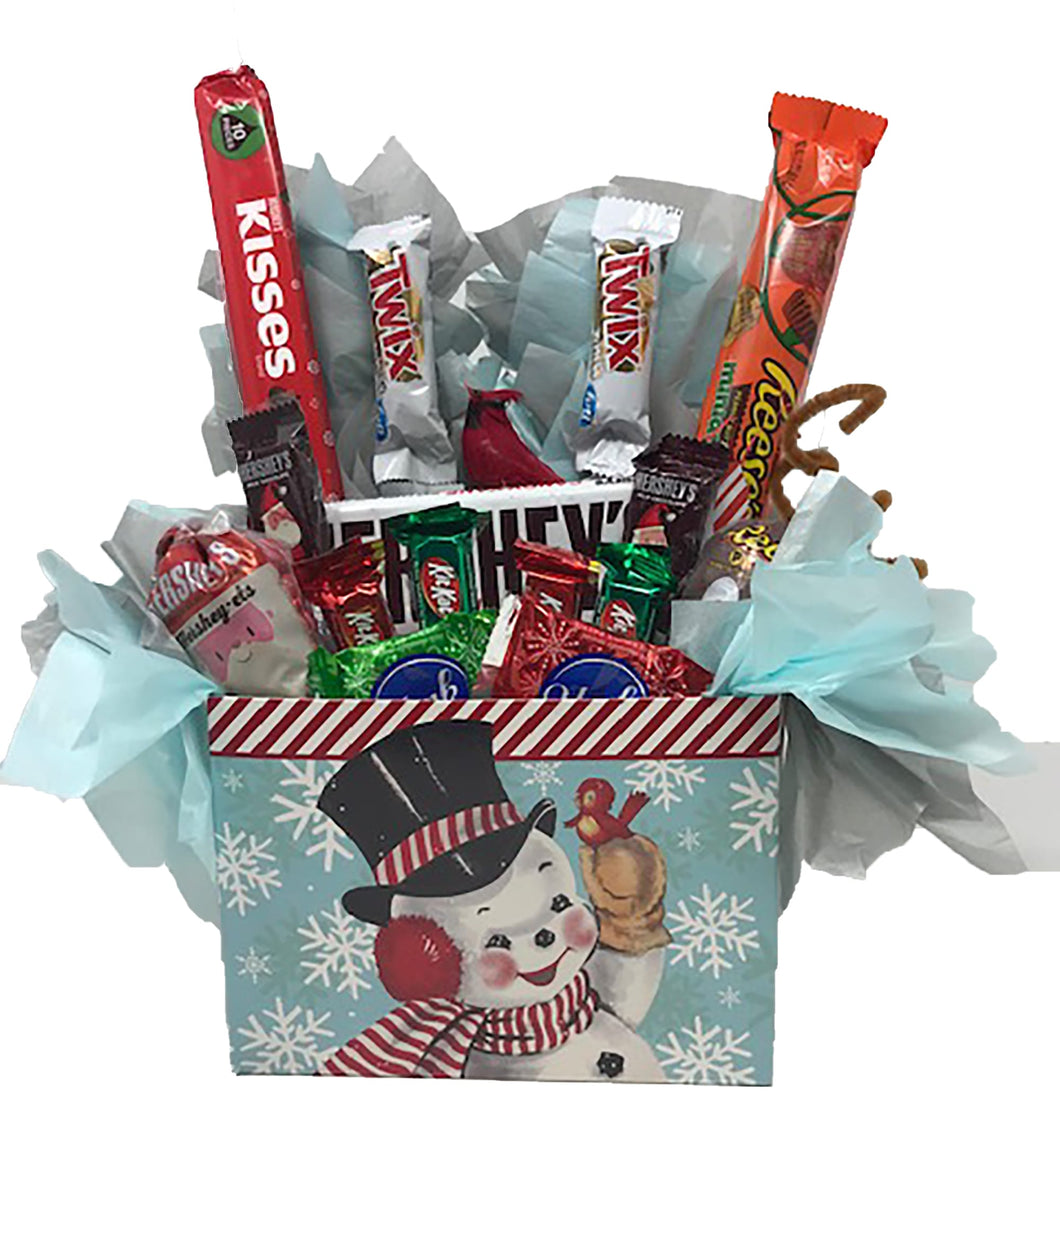 Vintage Snowman Gift Box with assorted chocolates candy and keepsake cardinal